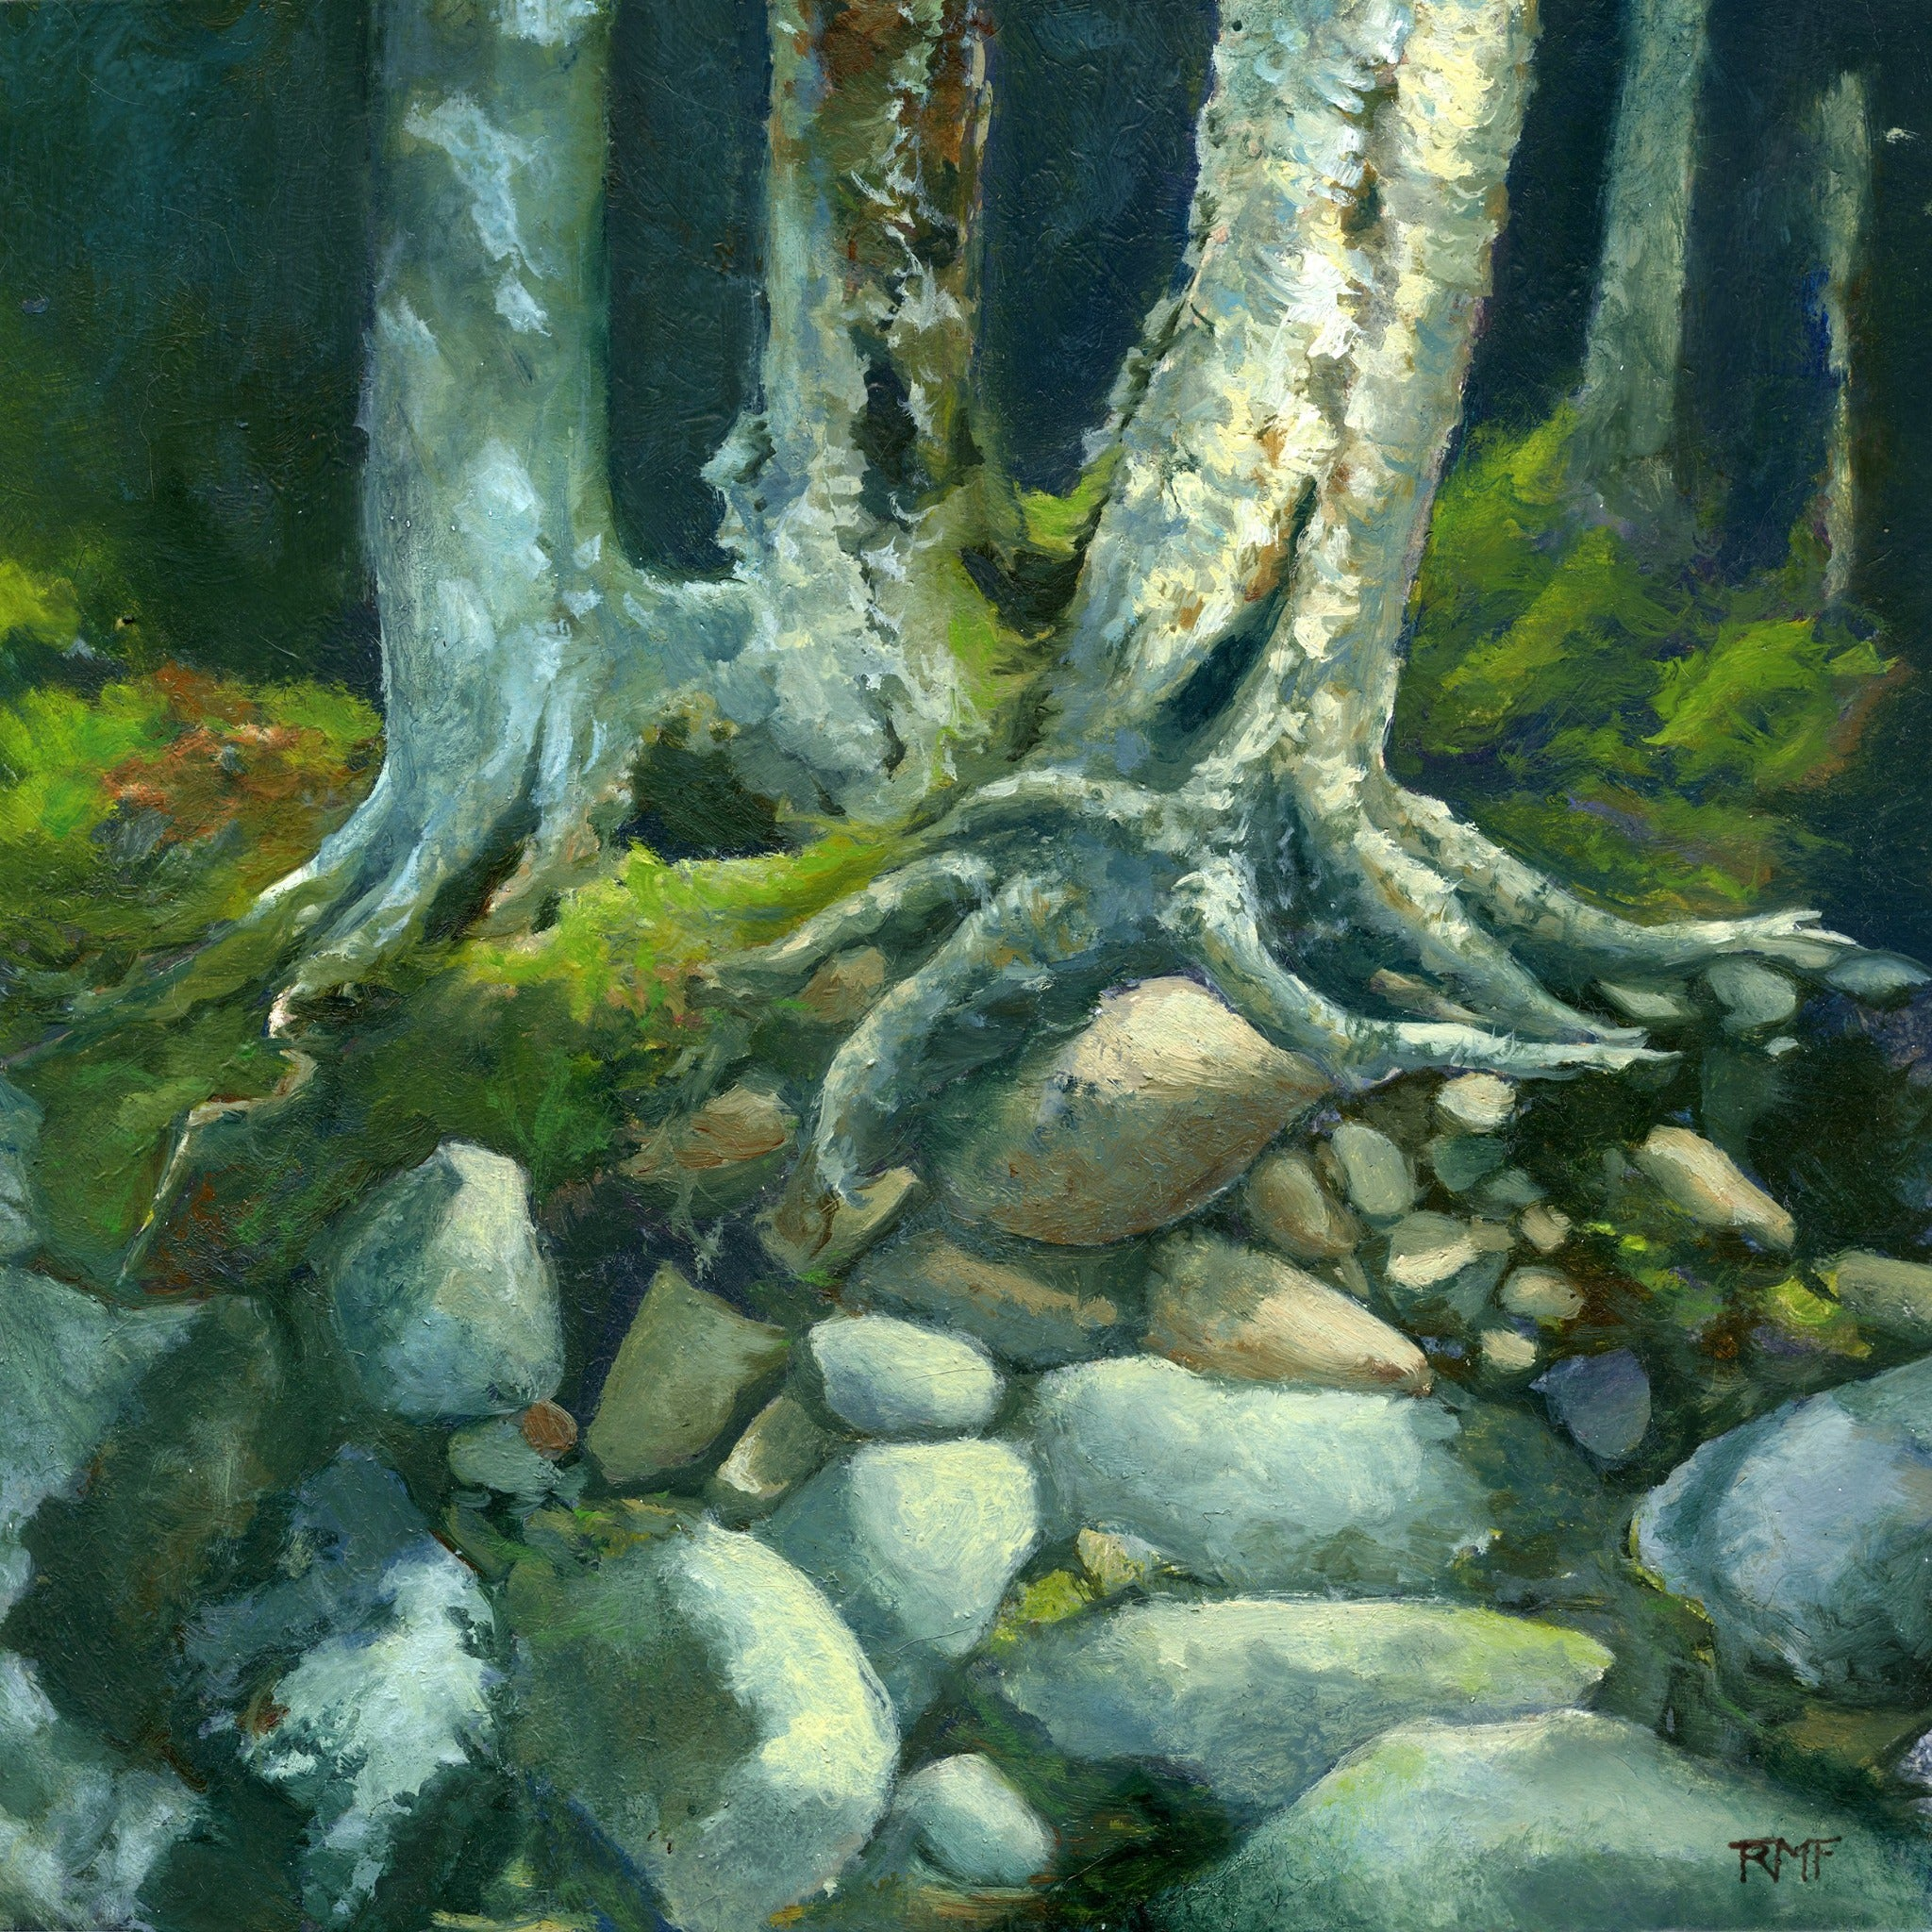 """Riverbank Boulders,"" 10x10 inch oil painting on panel, by Rebecca M. Fullerton. White Mountain art and landscape paintings."